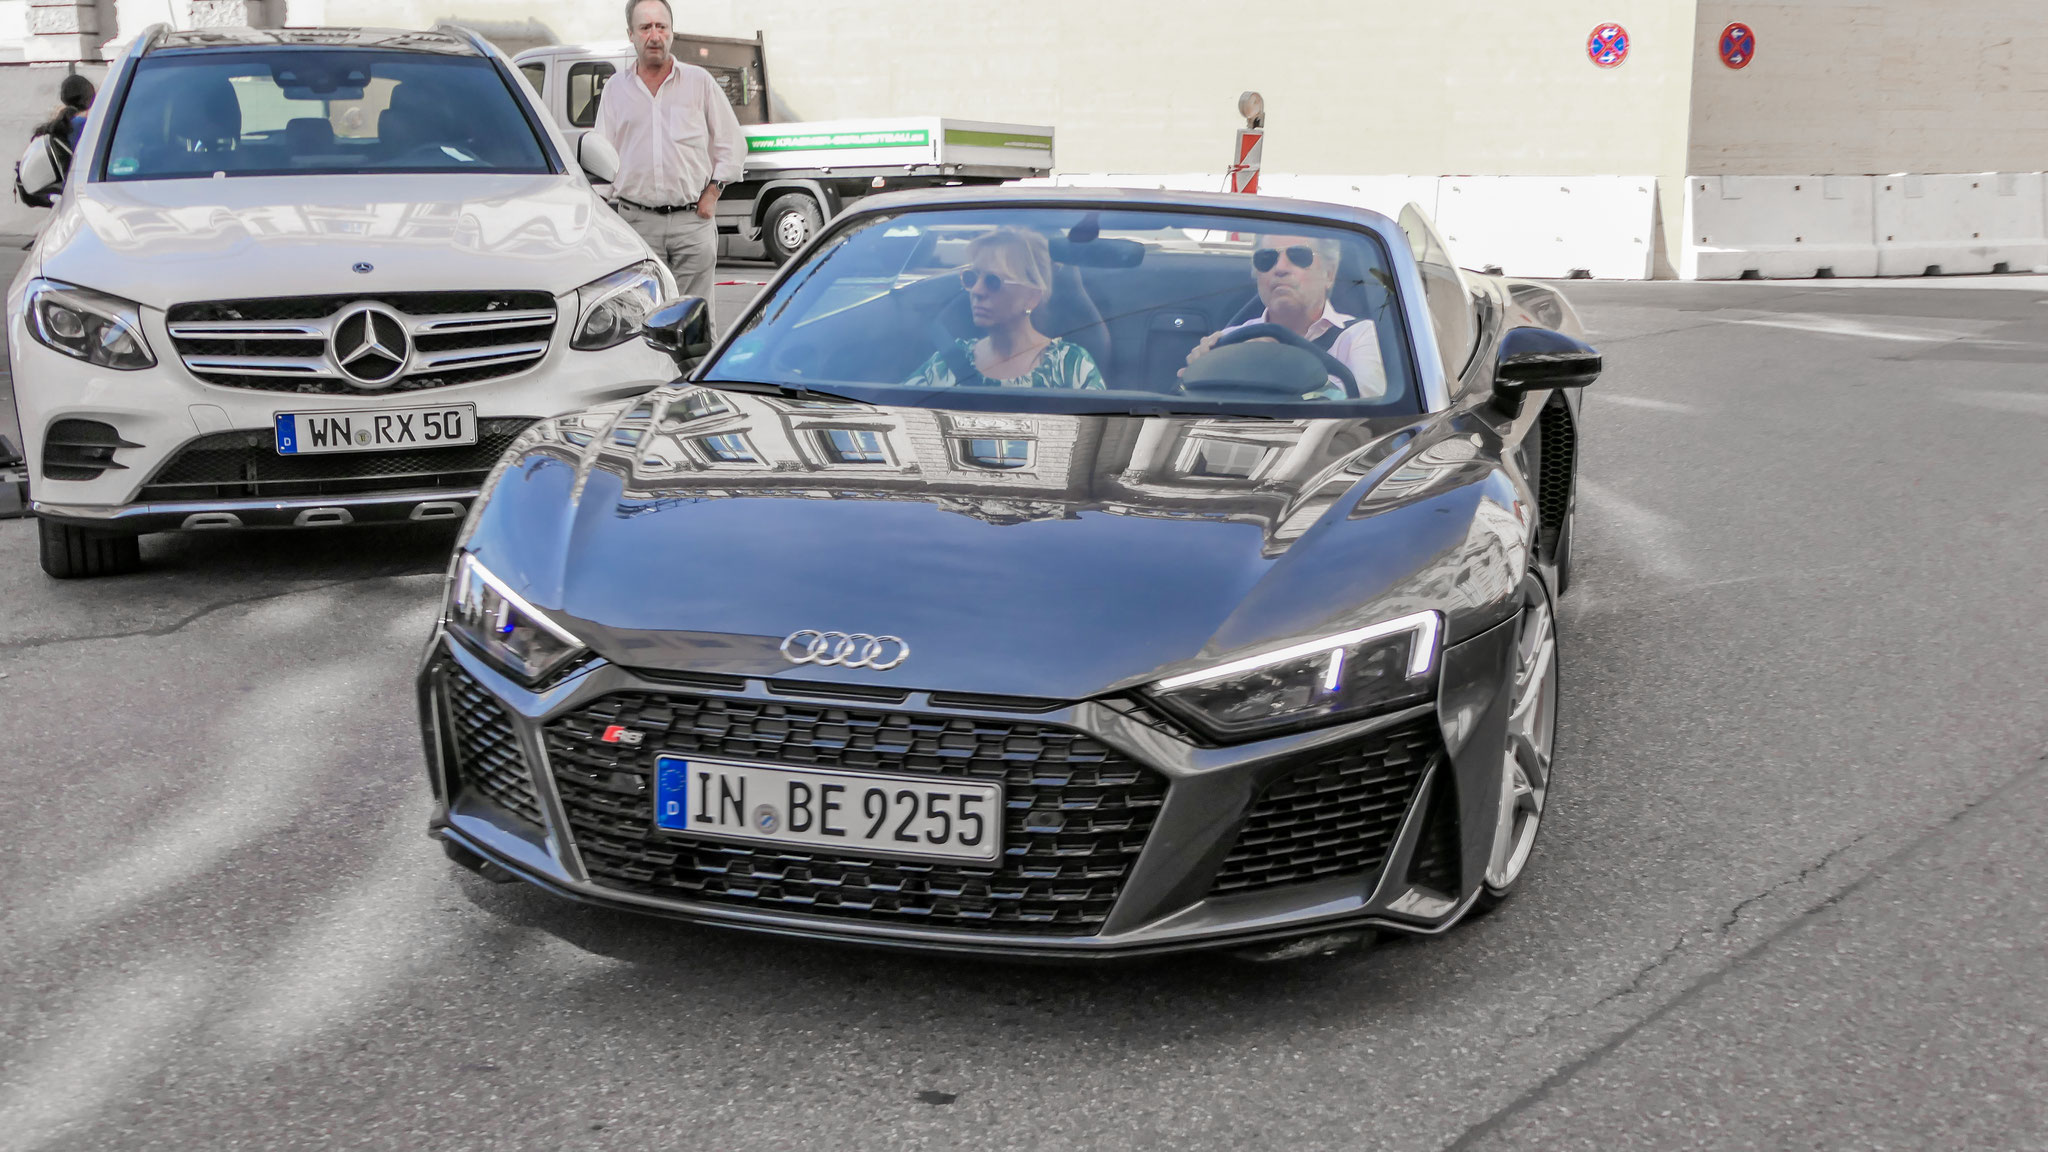 Audi R8 V10 Spyder - IN-BE-8255